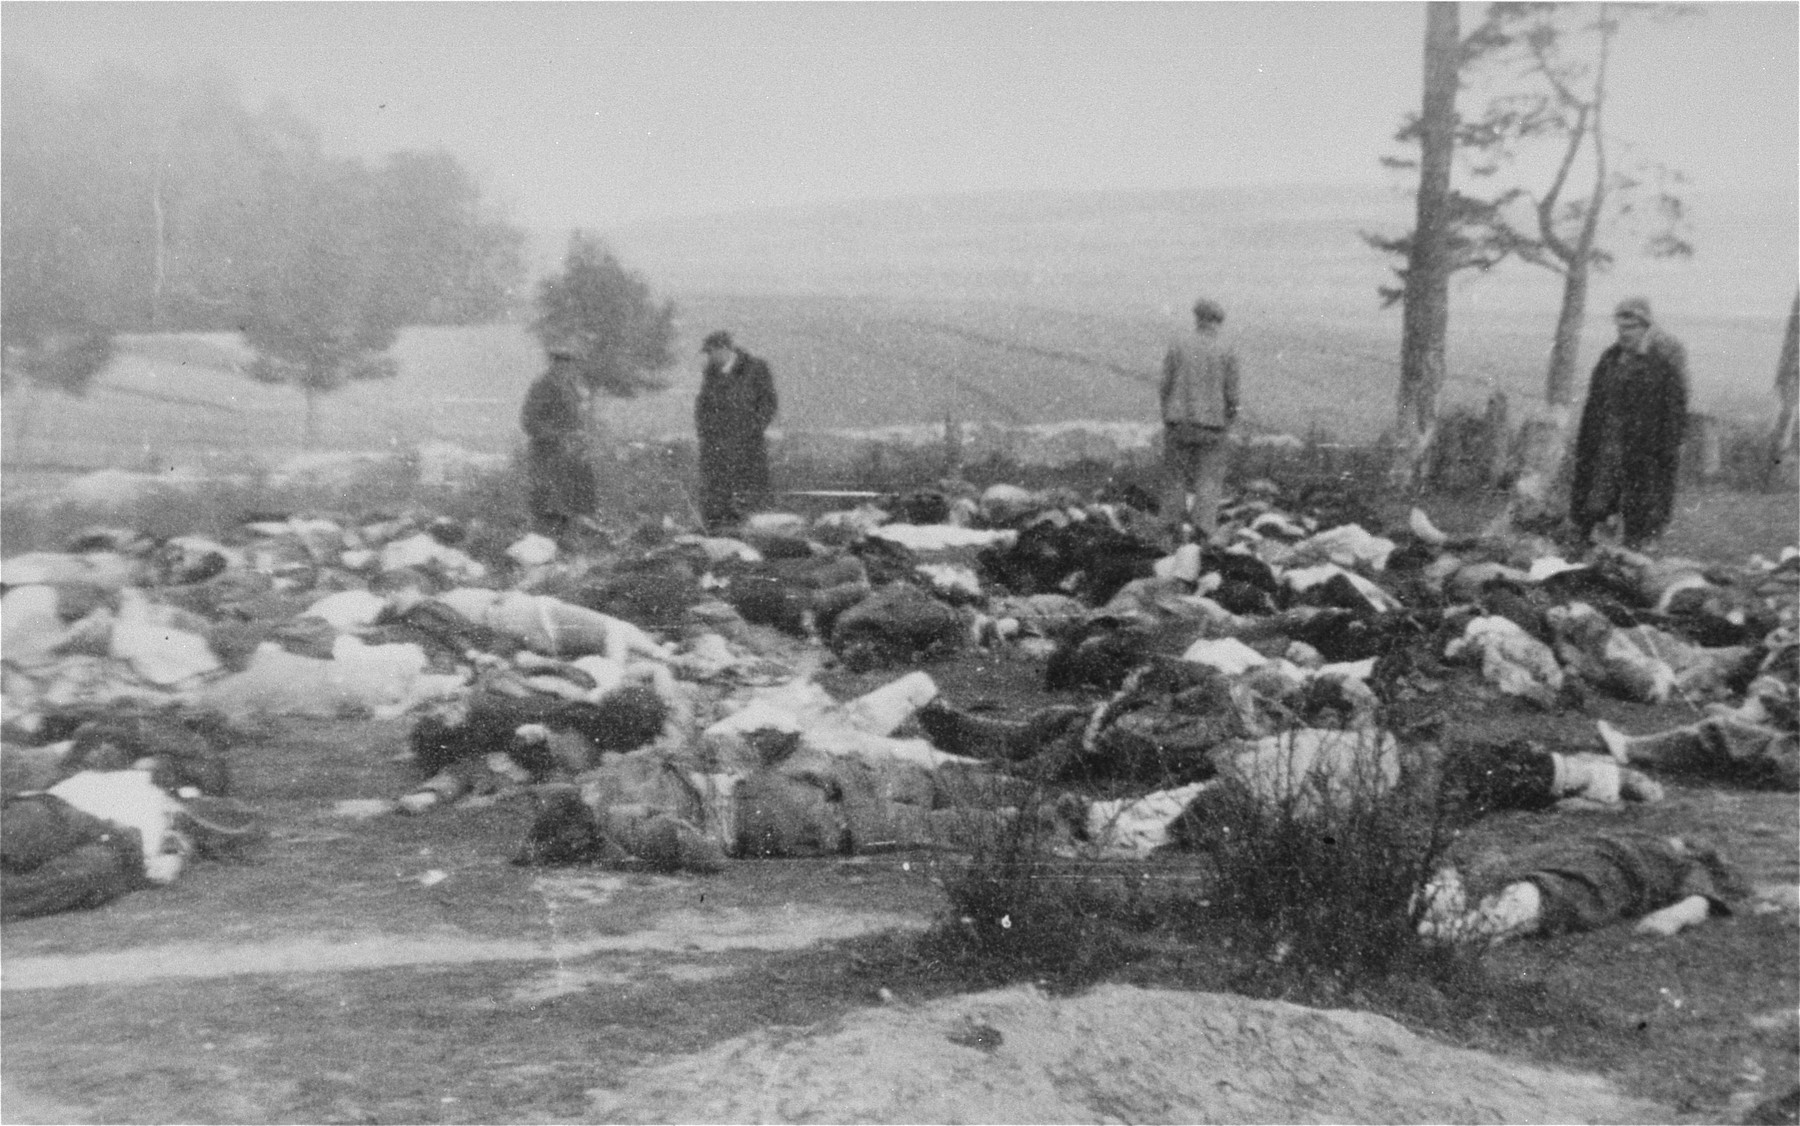 Four men view the bodies of Jews shot at a Jewish cemetery in the vicinity of Bilgoraj.